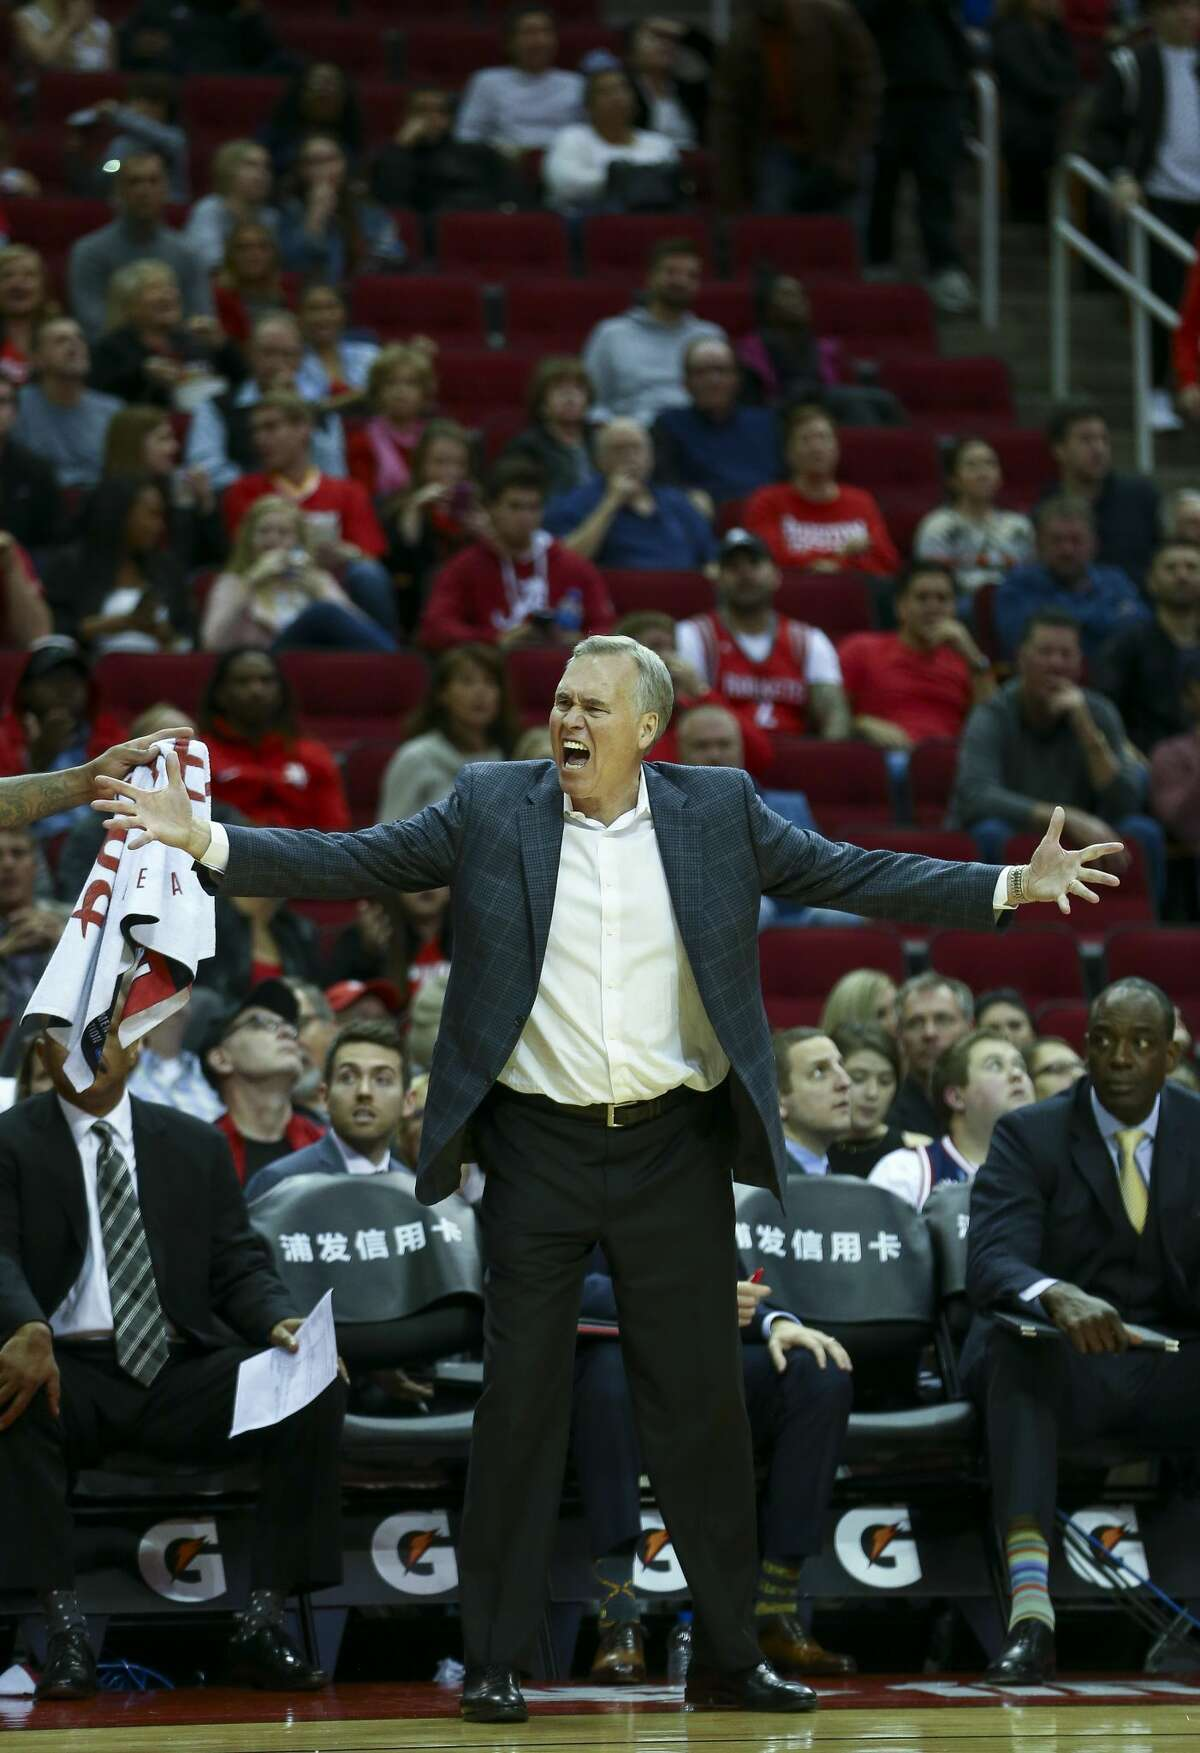 Houston Rockets head coach Mike D'Antoni reacts after a call made against the Rockets during the third quarter of the NBA game against the Indiana Pacers at Toyota Center Sunday, Nov. 11, 2018, in Houston. The Rockets won 115-103.